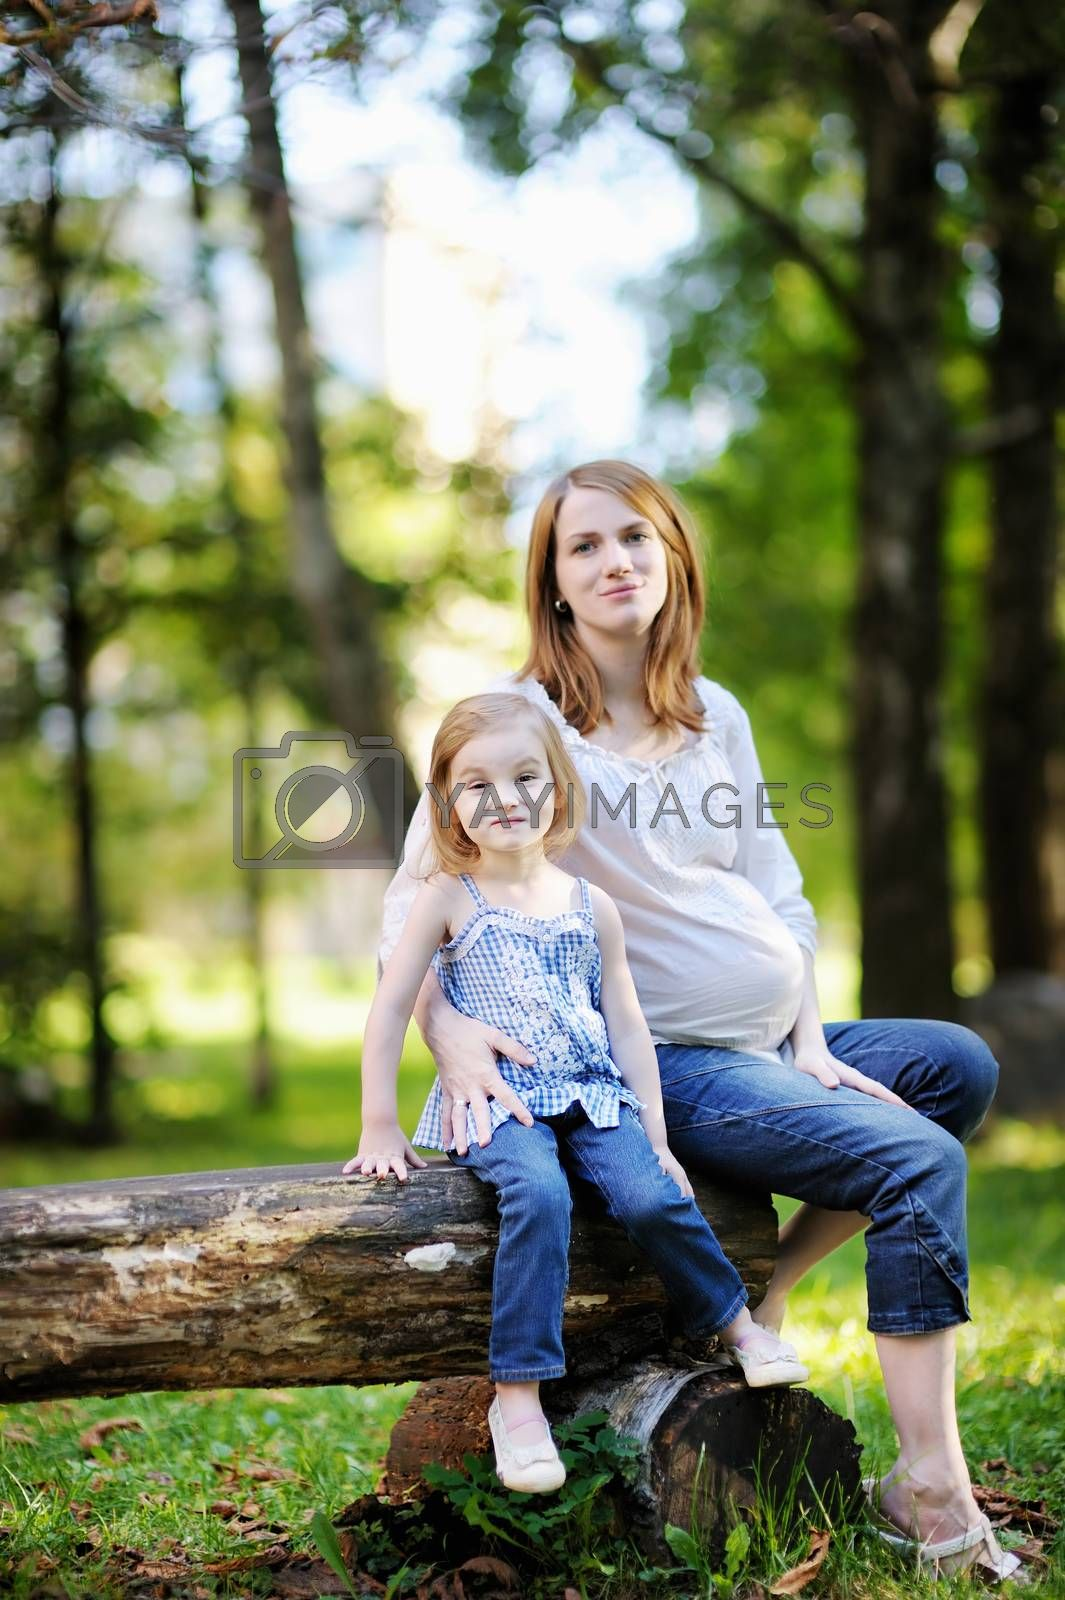 Little girl and her pregnant mother outdoors